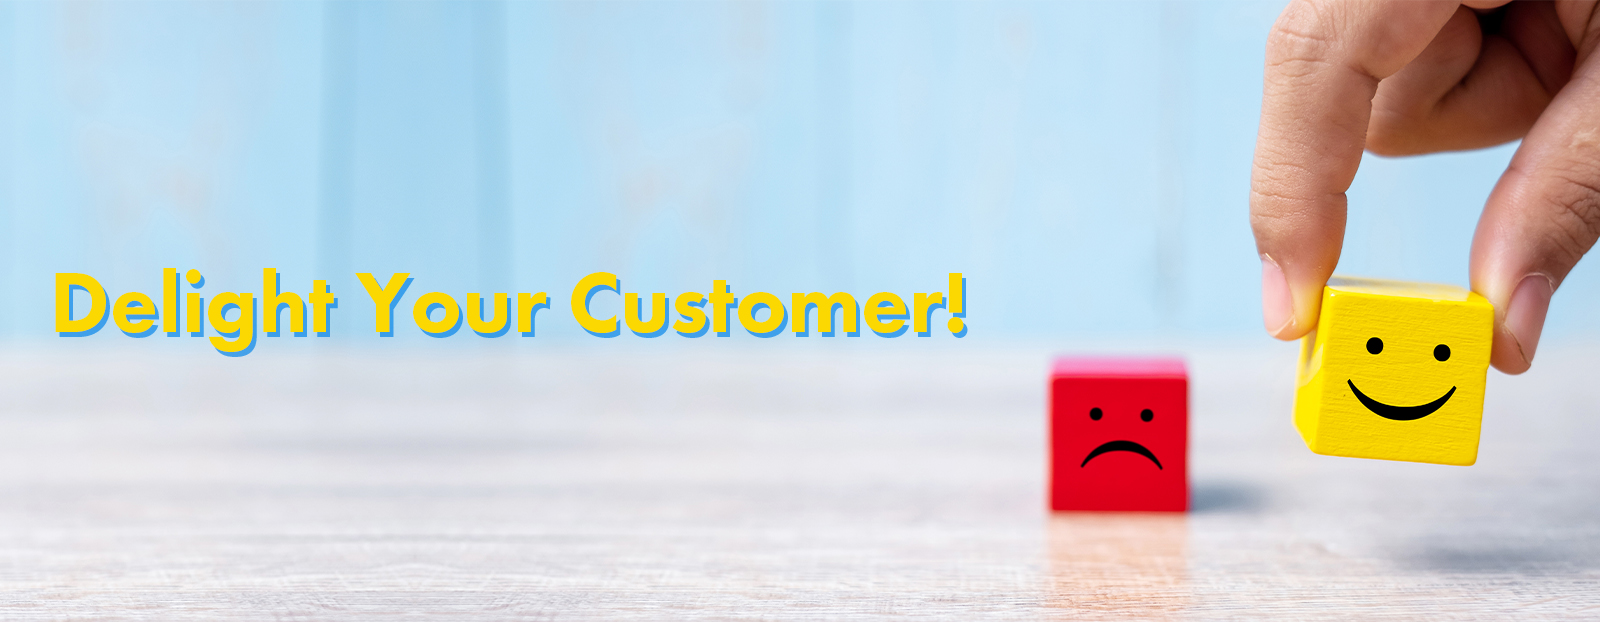 Delight Your Customer!